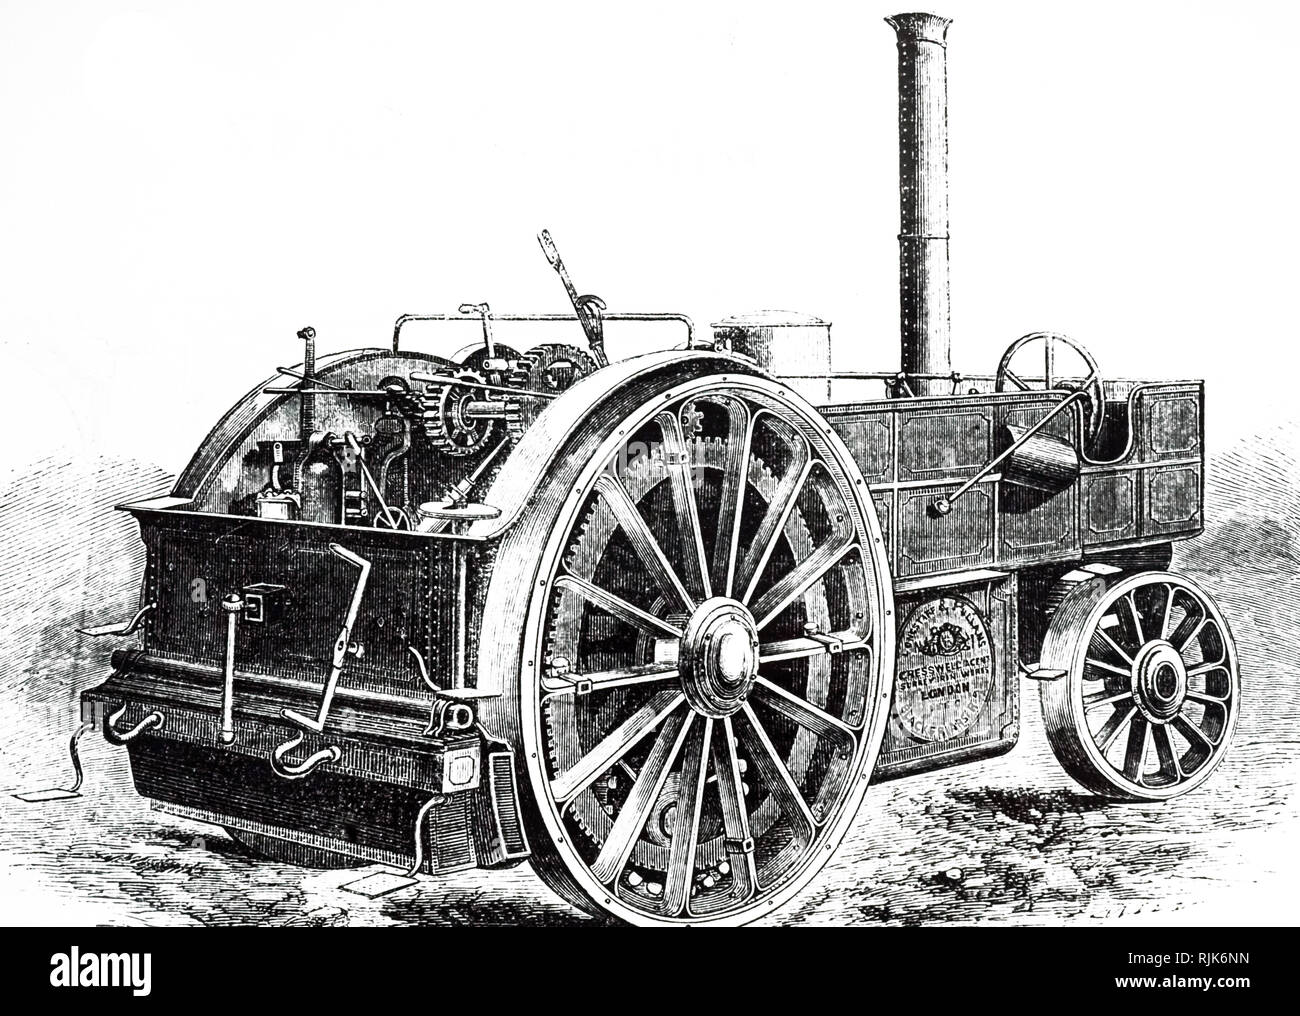 An engraving depicting a traction engine by Longstaff & Pullen. Of unique construction because a separate chassis and a second independent frame carried the driving axle and gear. Extra grip was possible by lowering additional driving wheels. Dated 19th century - Stock Image